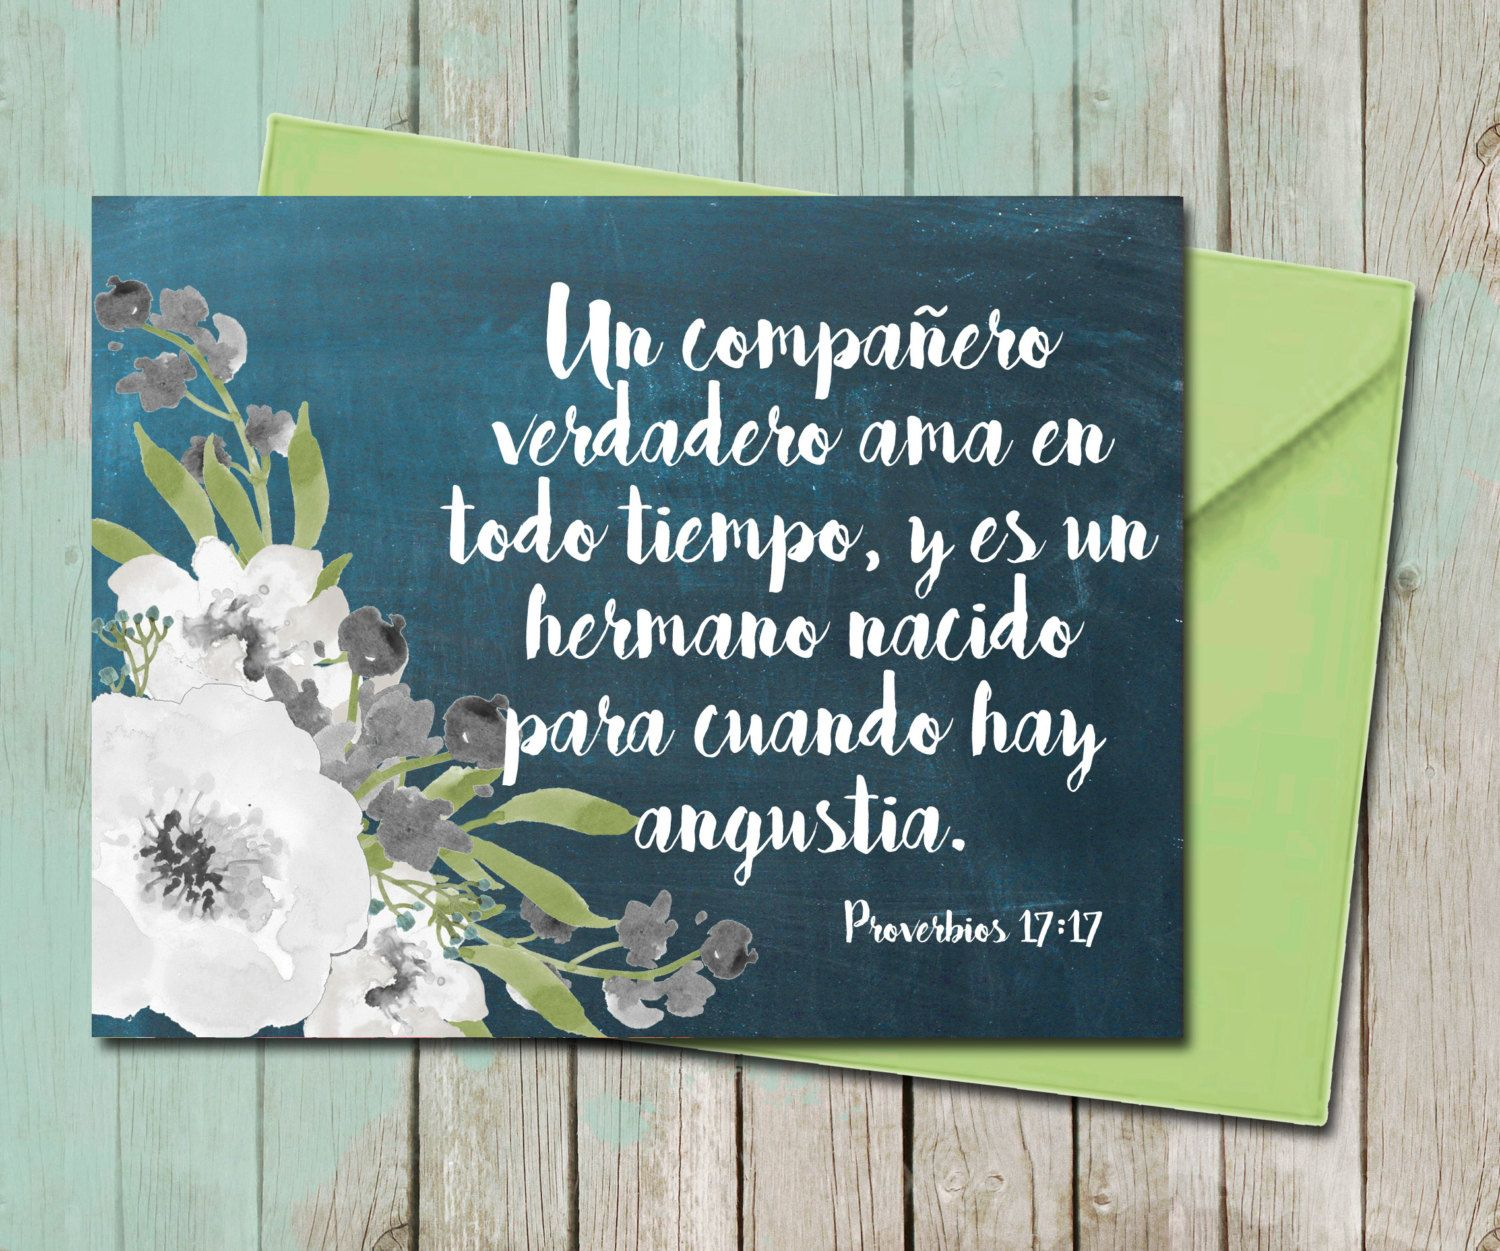 Floral friendship greeting card spanish chalkboard true friend floral friendship greeting card spanish chalkboard true friend proverbios 1717 bible verse scripture handlettering kristyandbryce Image collections